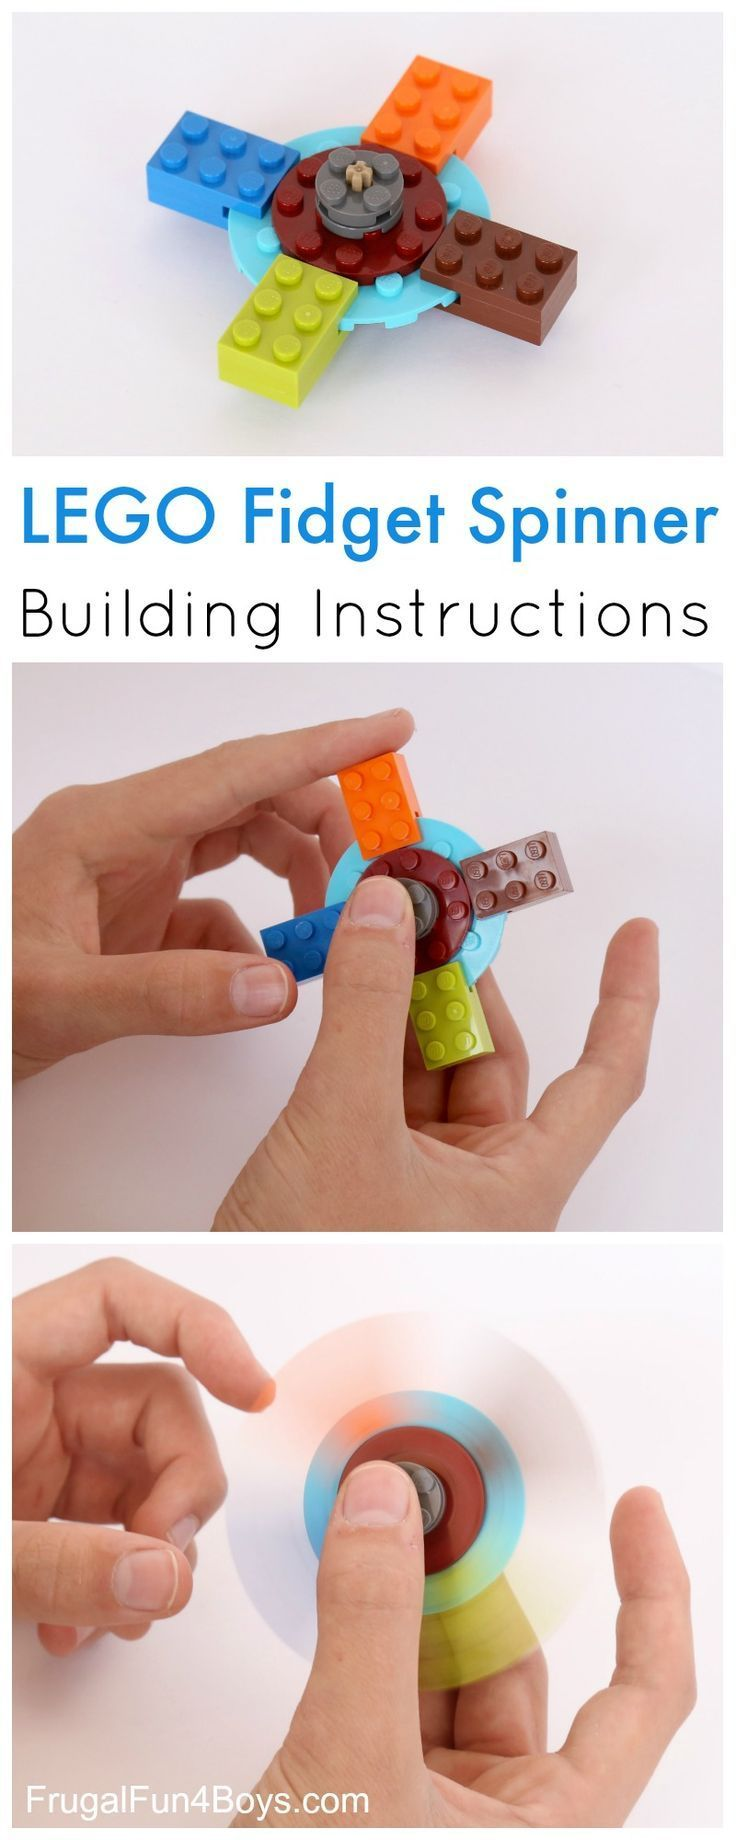 How To Build A Fidget Spinner With Lego Bricks Kids Crafts